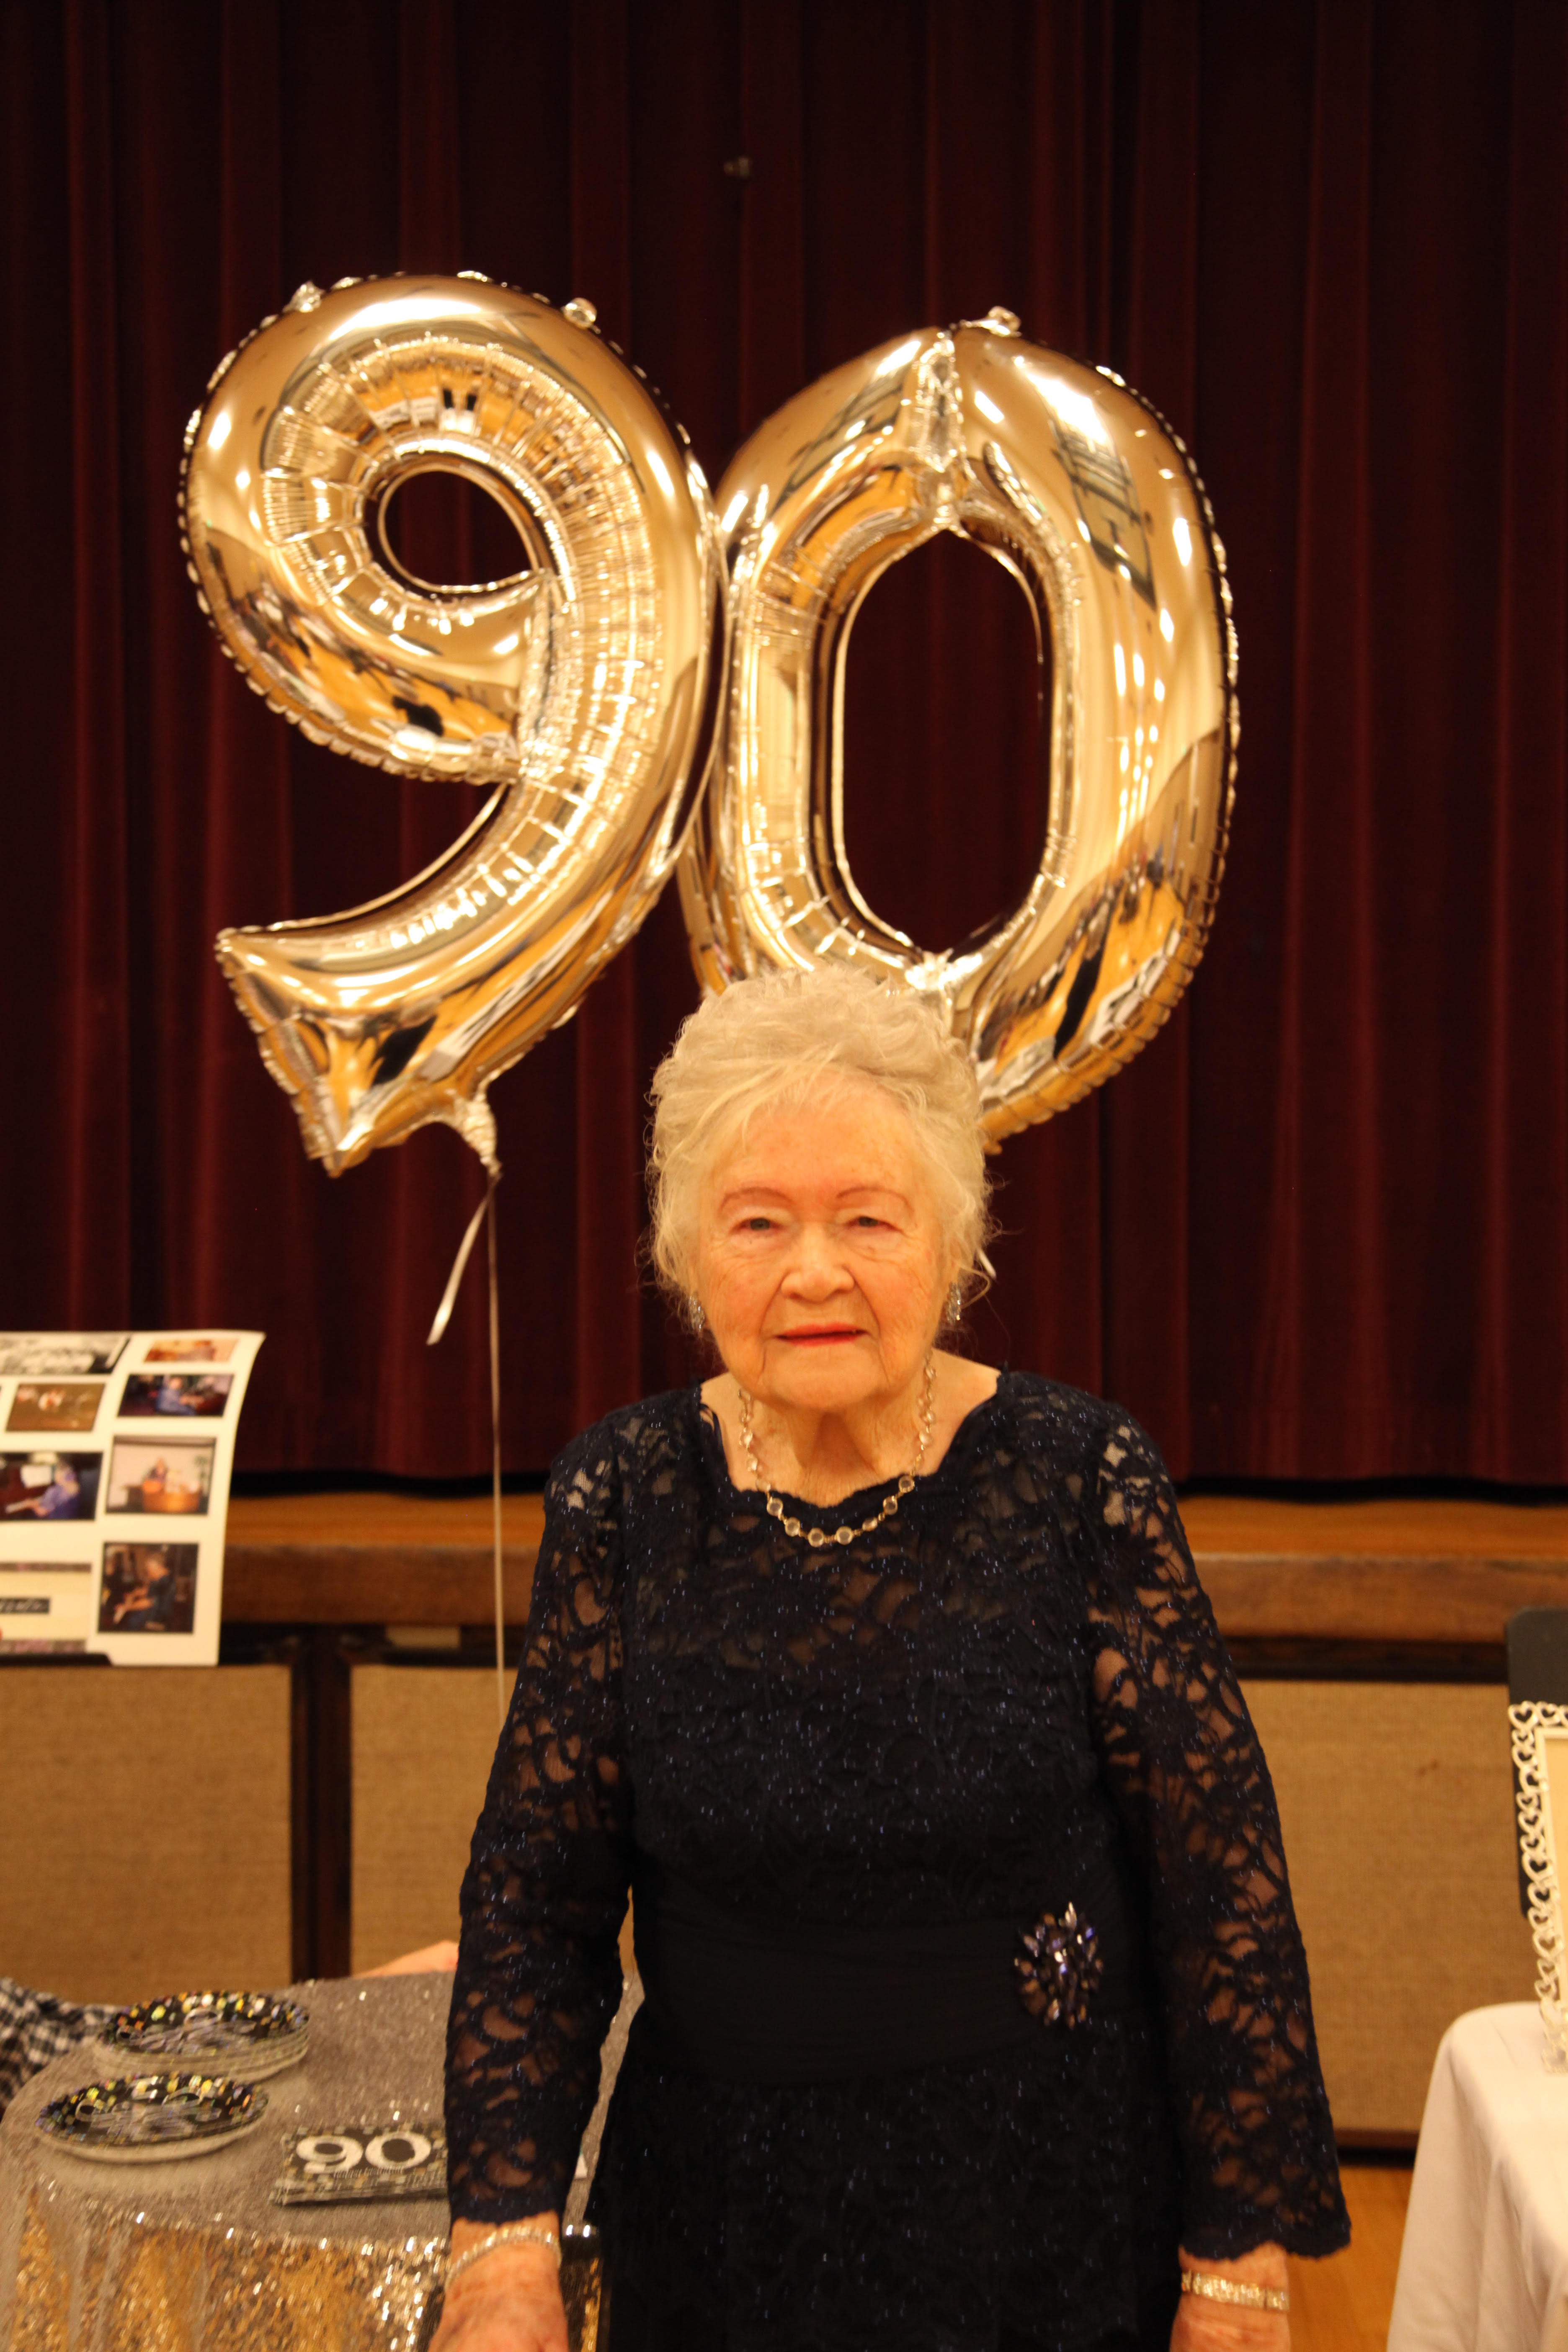 Gay Goaslind at her 90th birthday party on Jan. 14, 2019.